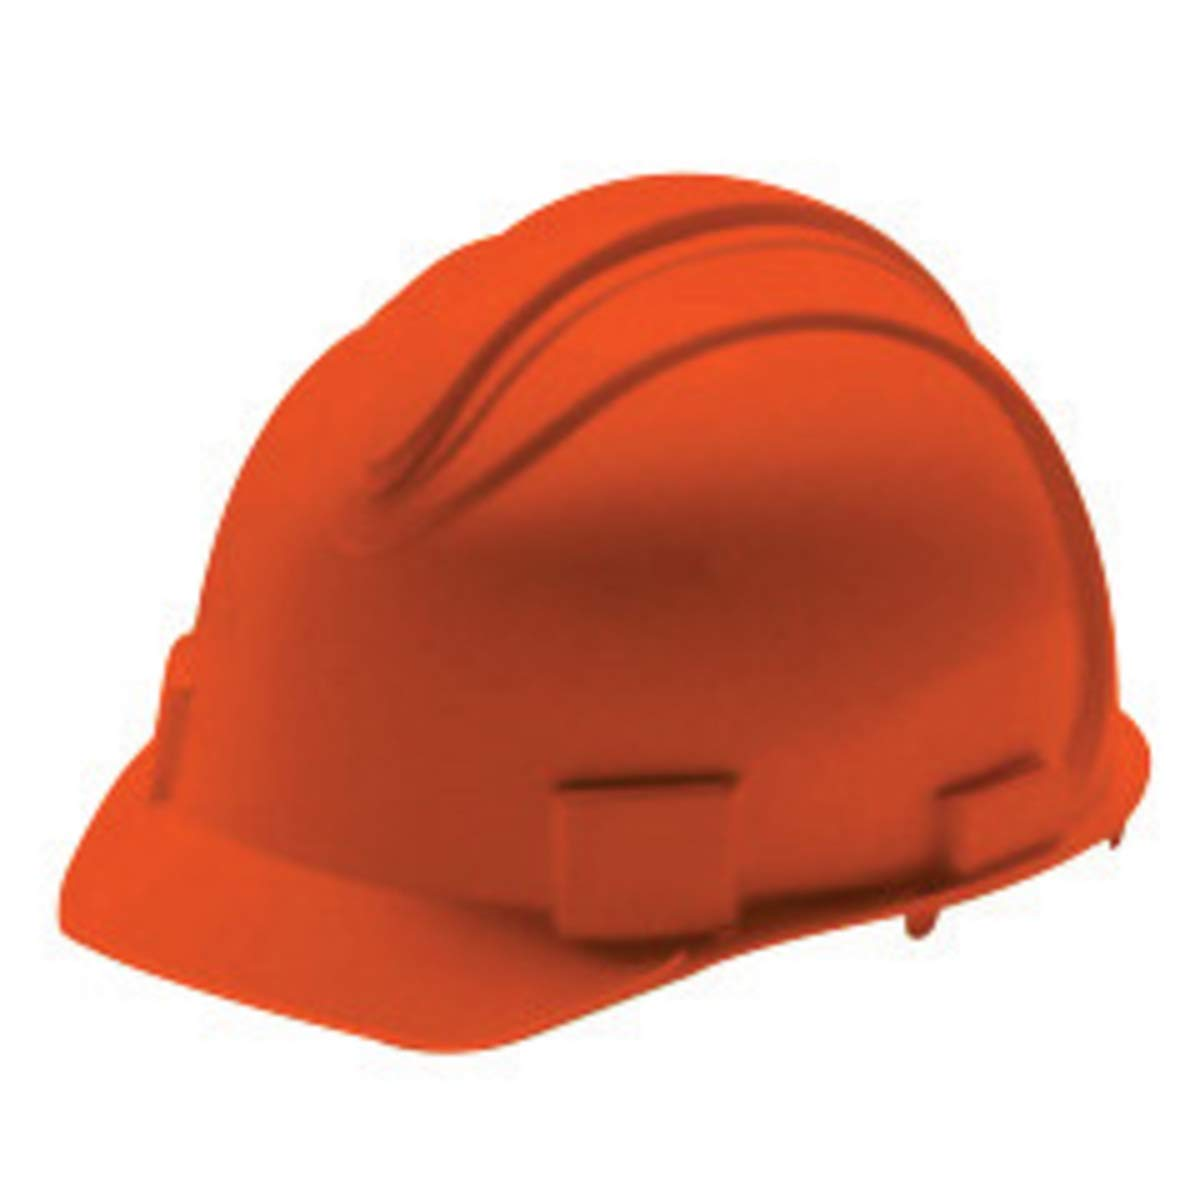 9b03694176d Get Quotations · Kimberly-Clark Professional Orange Jackson Safety Charger HDPE  Cap Style Slotted Hard Hat With 4